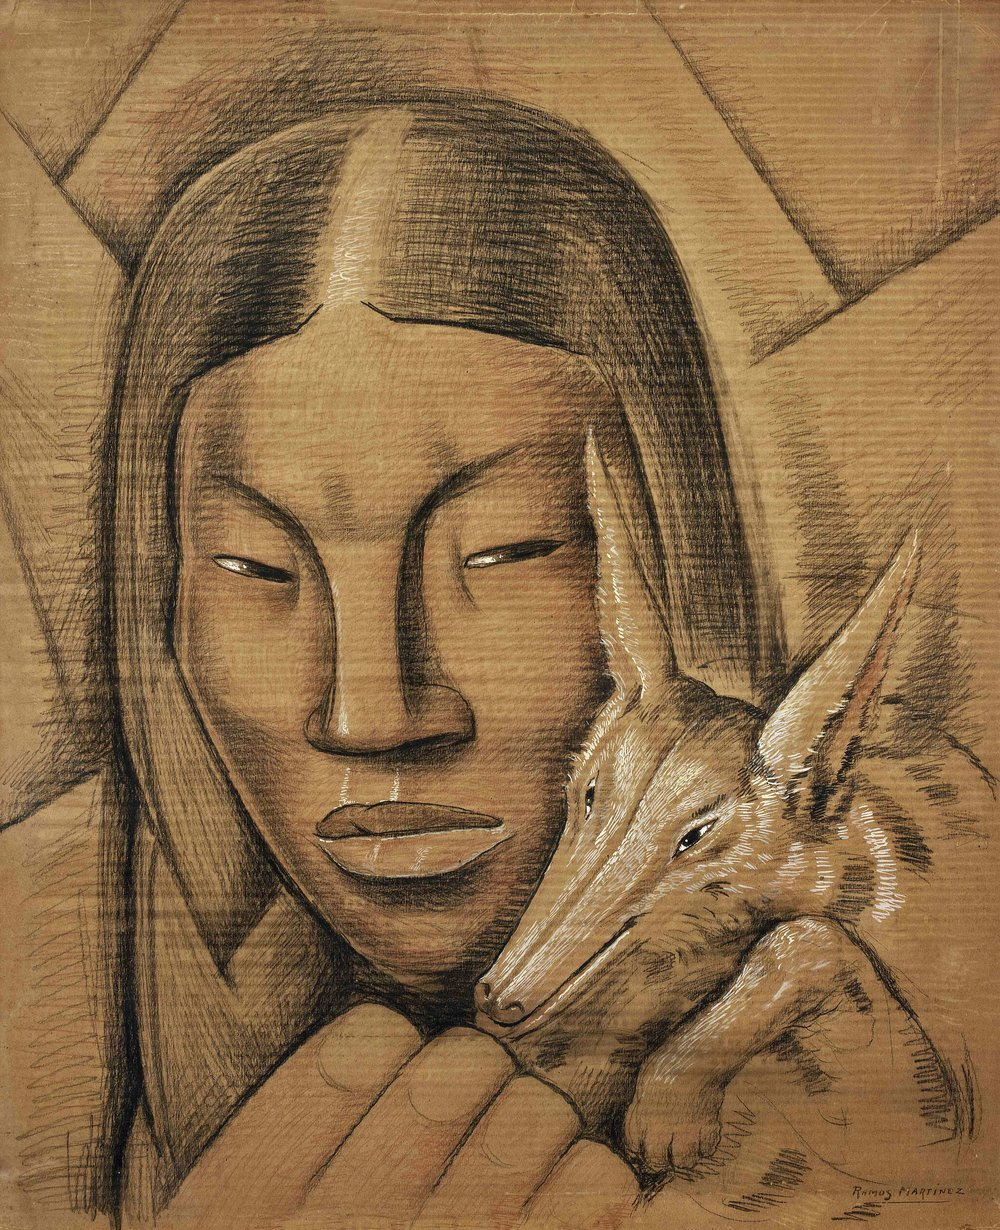 La India Cacomixtle / Indian Woman with Cacomixtle  ca. 1938 Conté crayon, tempera and charcoal on corrugated cardboard / crayon Conté, temple y carbón sobre papel cartón ondulado 42 x 34.5 inches / 106.7 x 87.6 centímetros Private collection